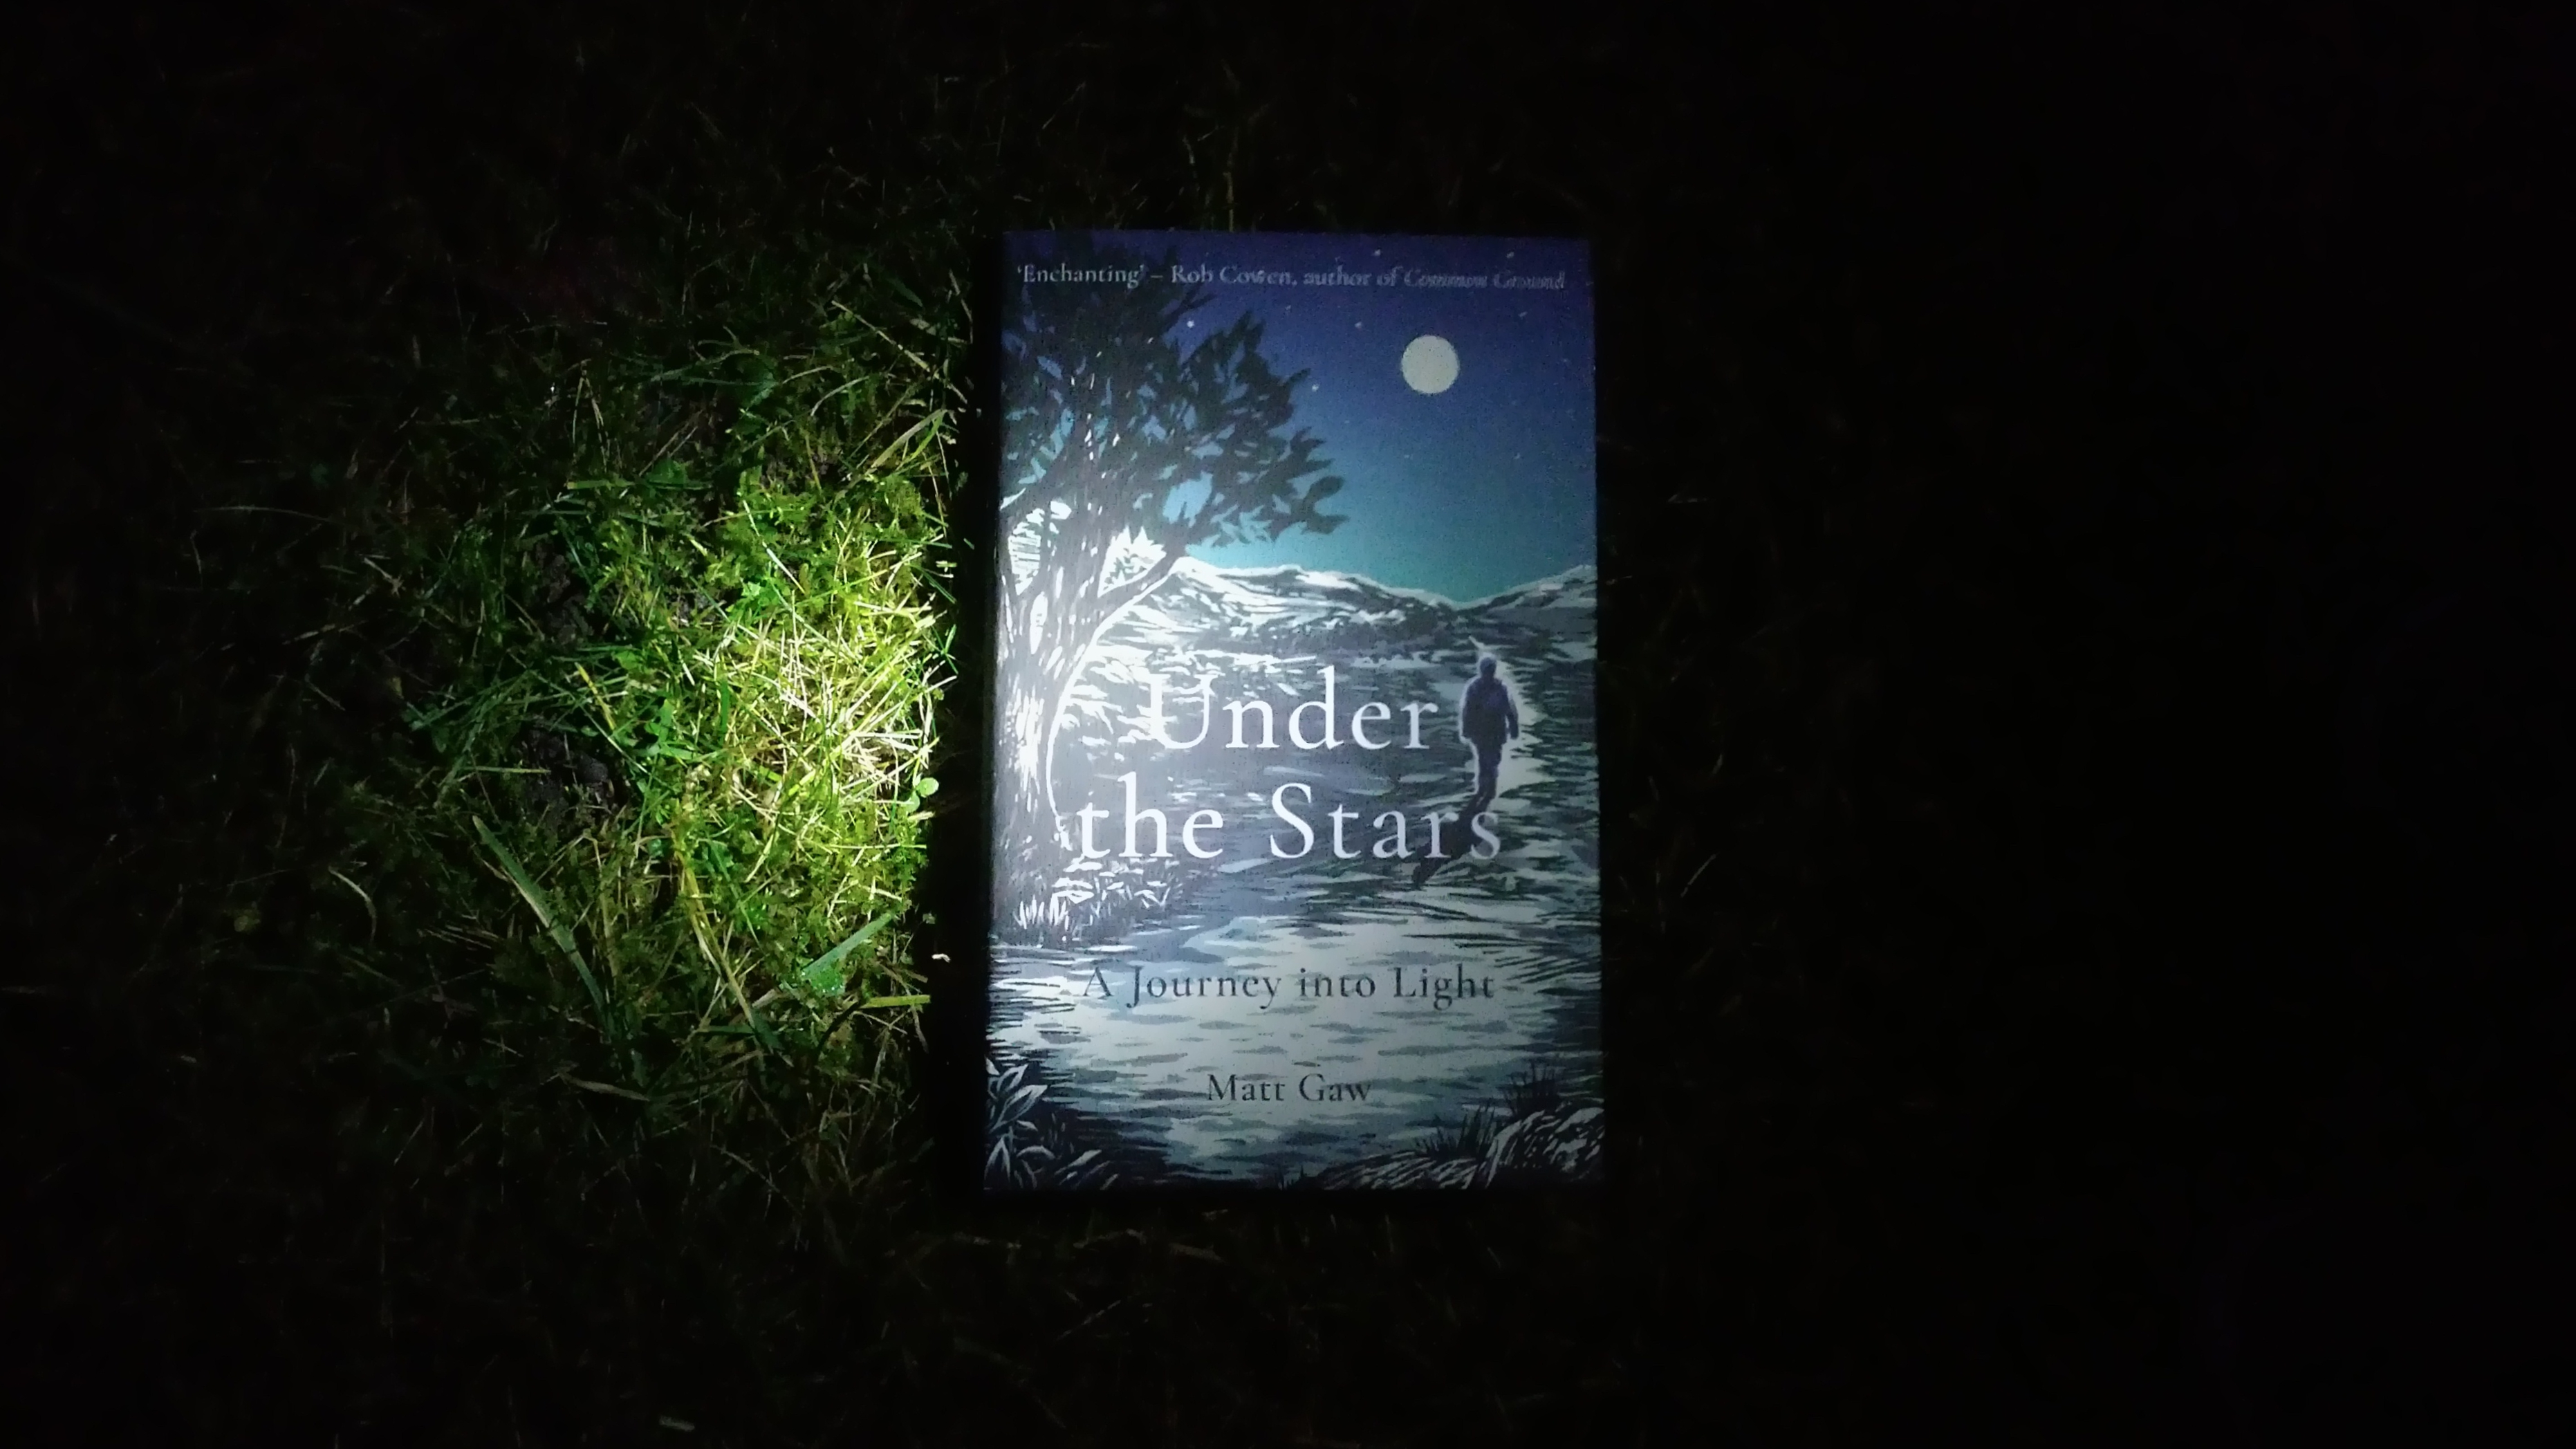 """Under the Stars: A Journey into Light"" published in February, 2020, and available in the Sea Library."